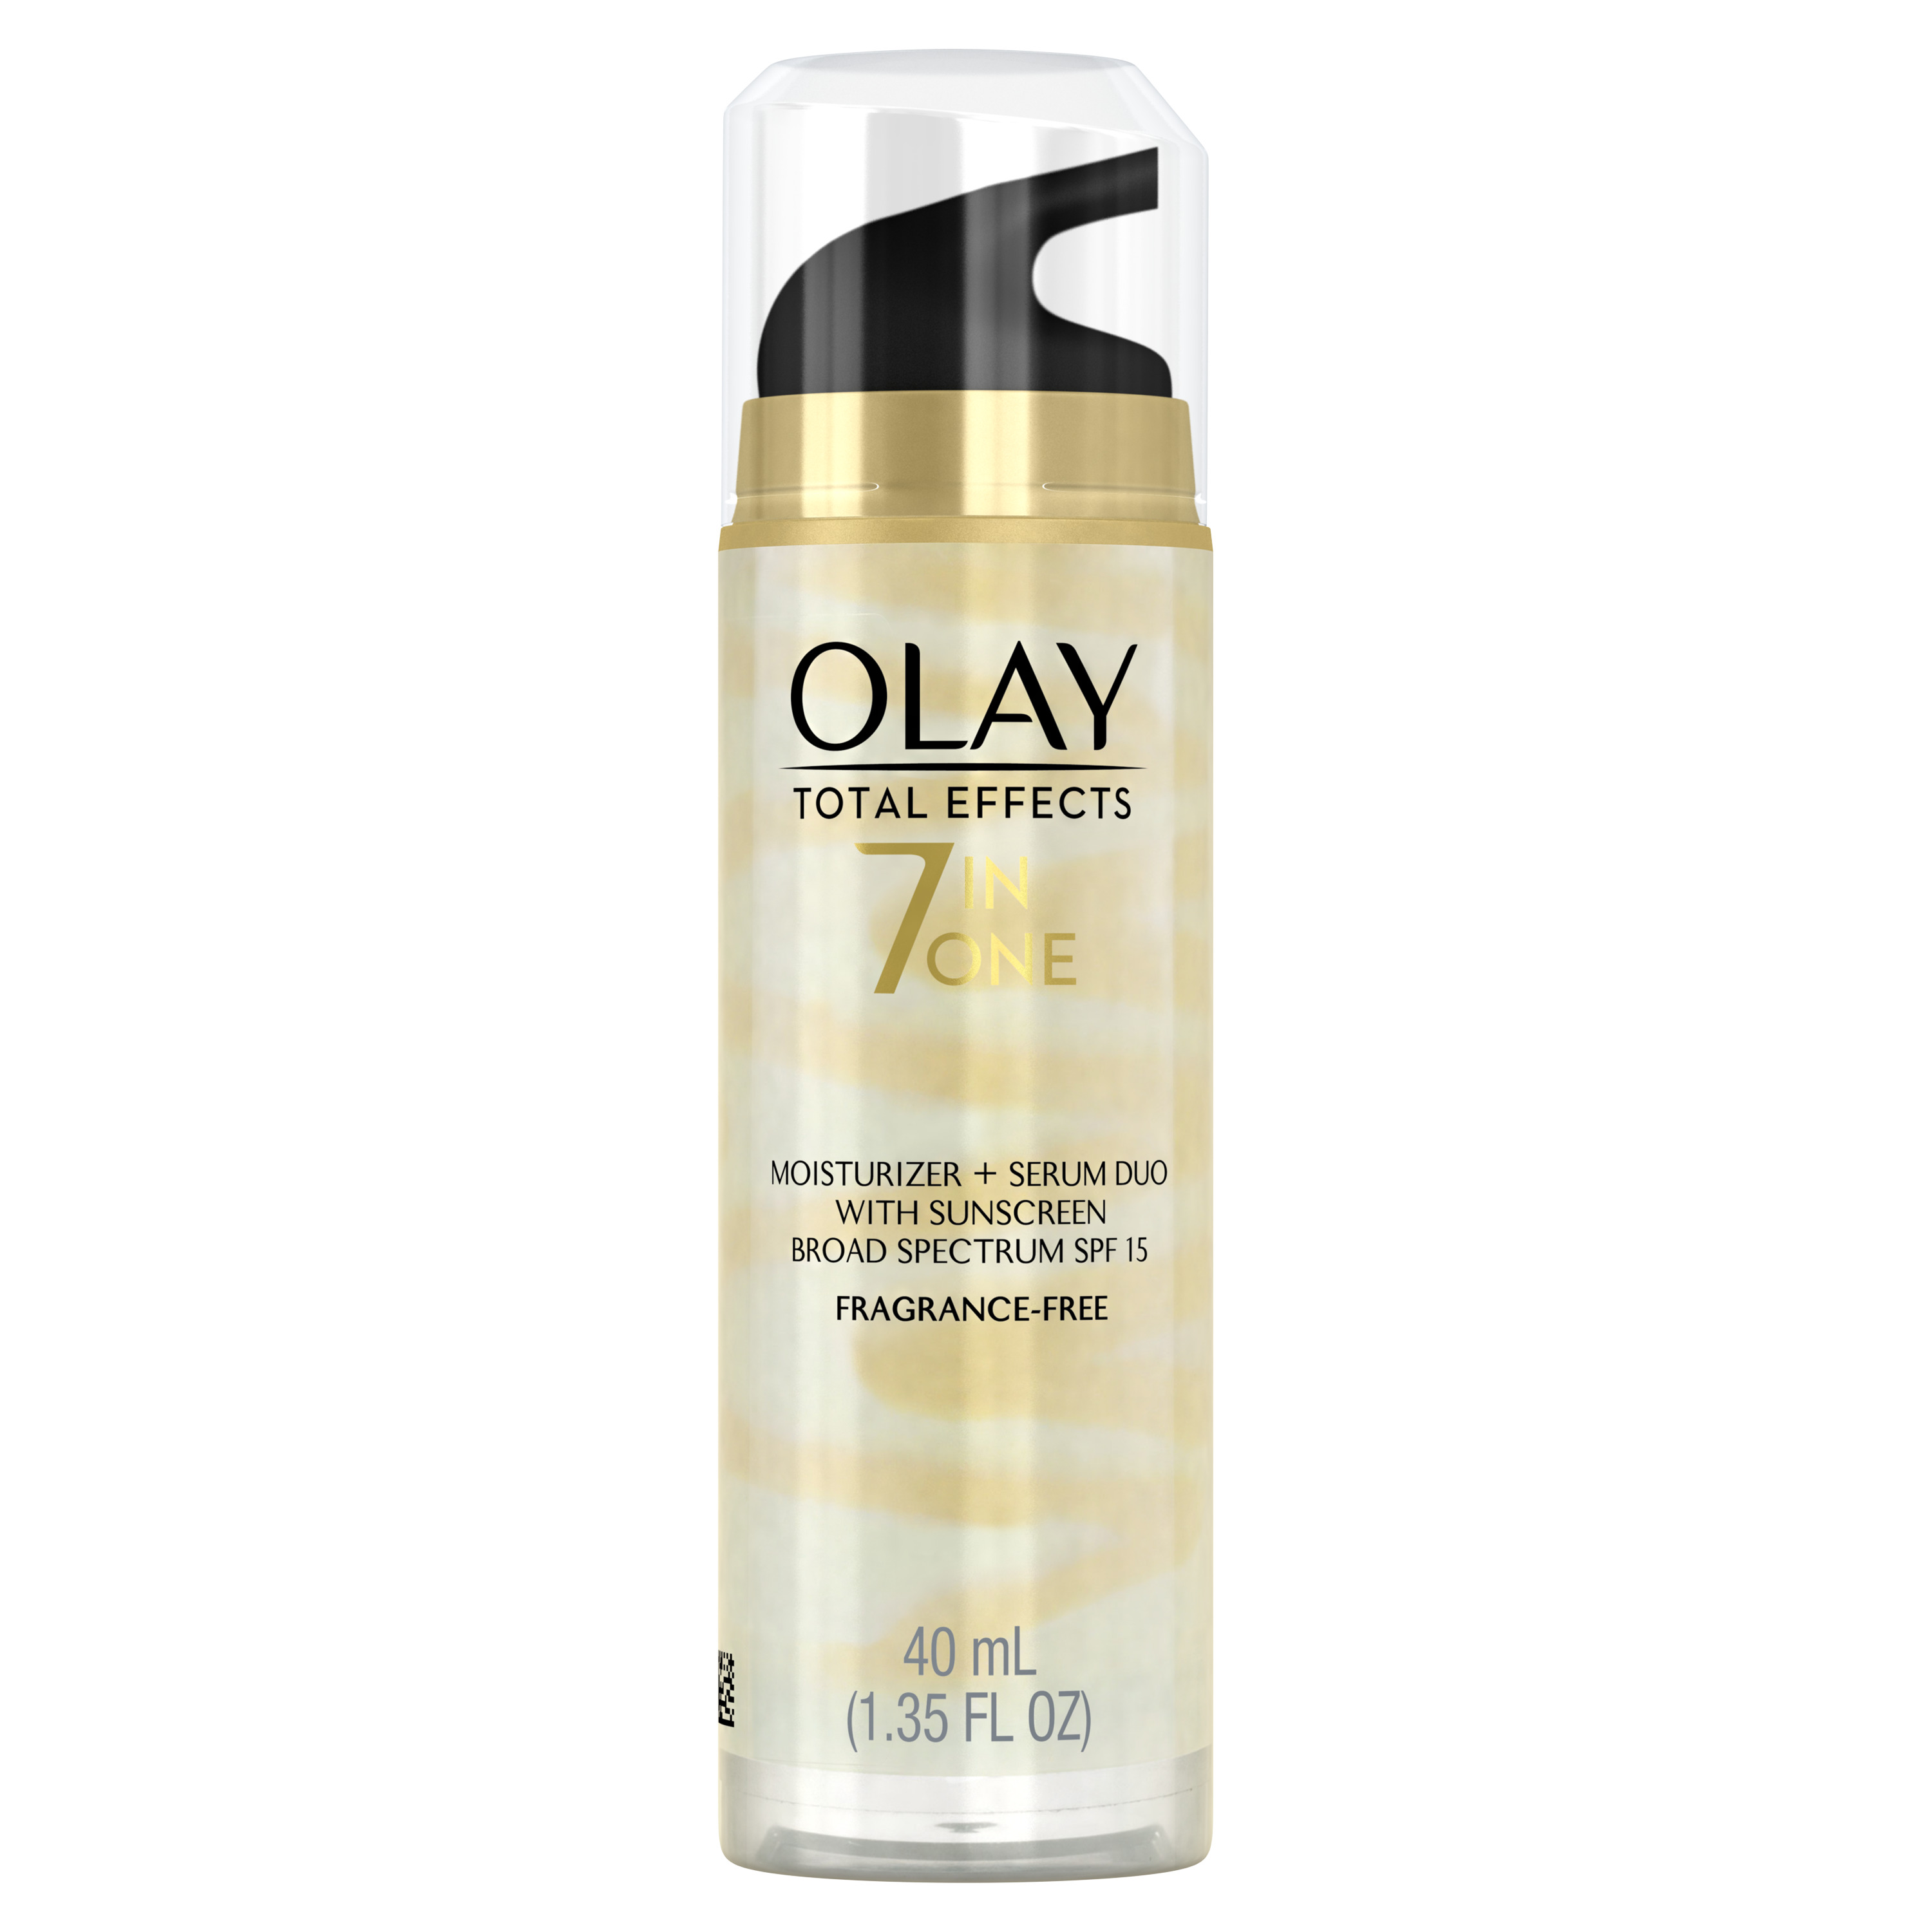 Olay Total Effects Face Moisturizer + Serum Duo SPF 15, 1.35 fl oz